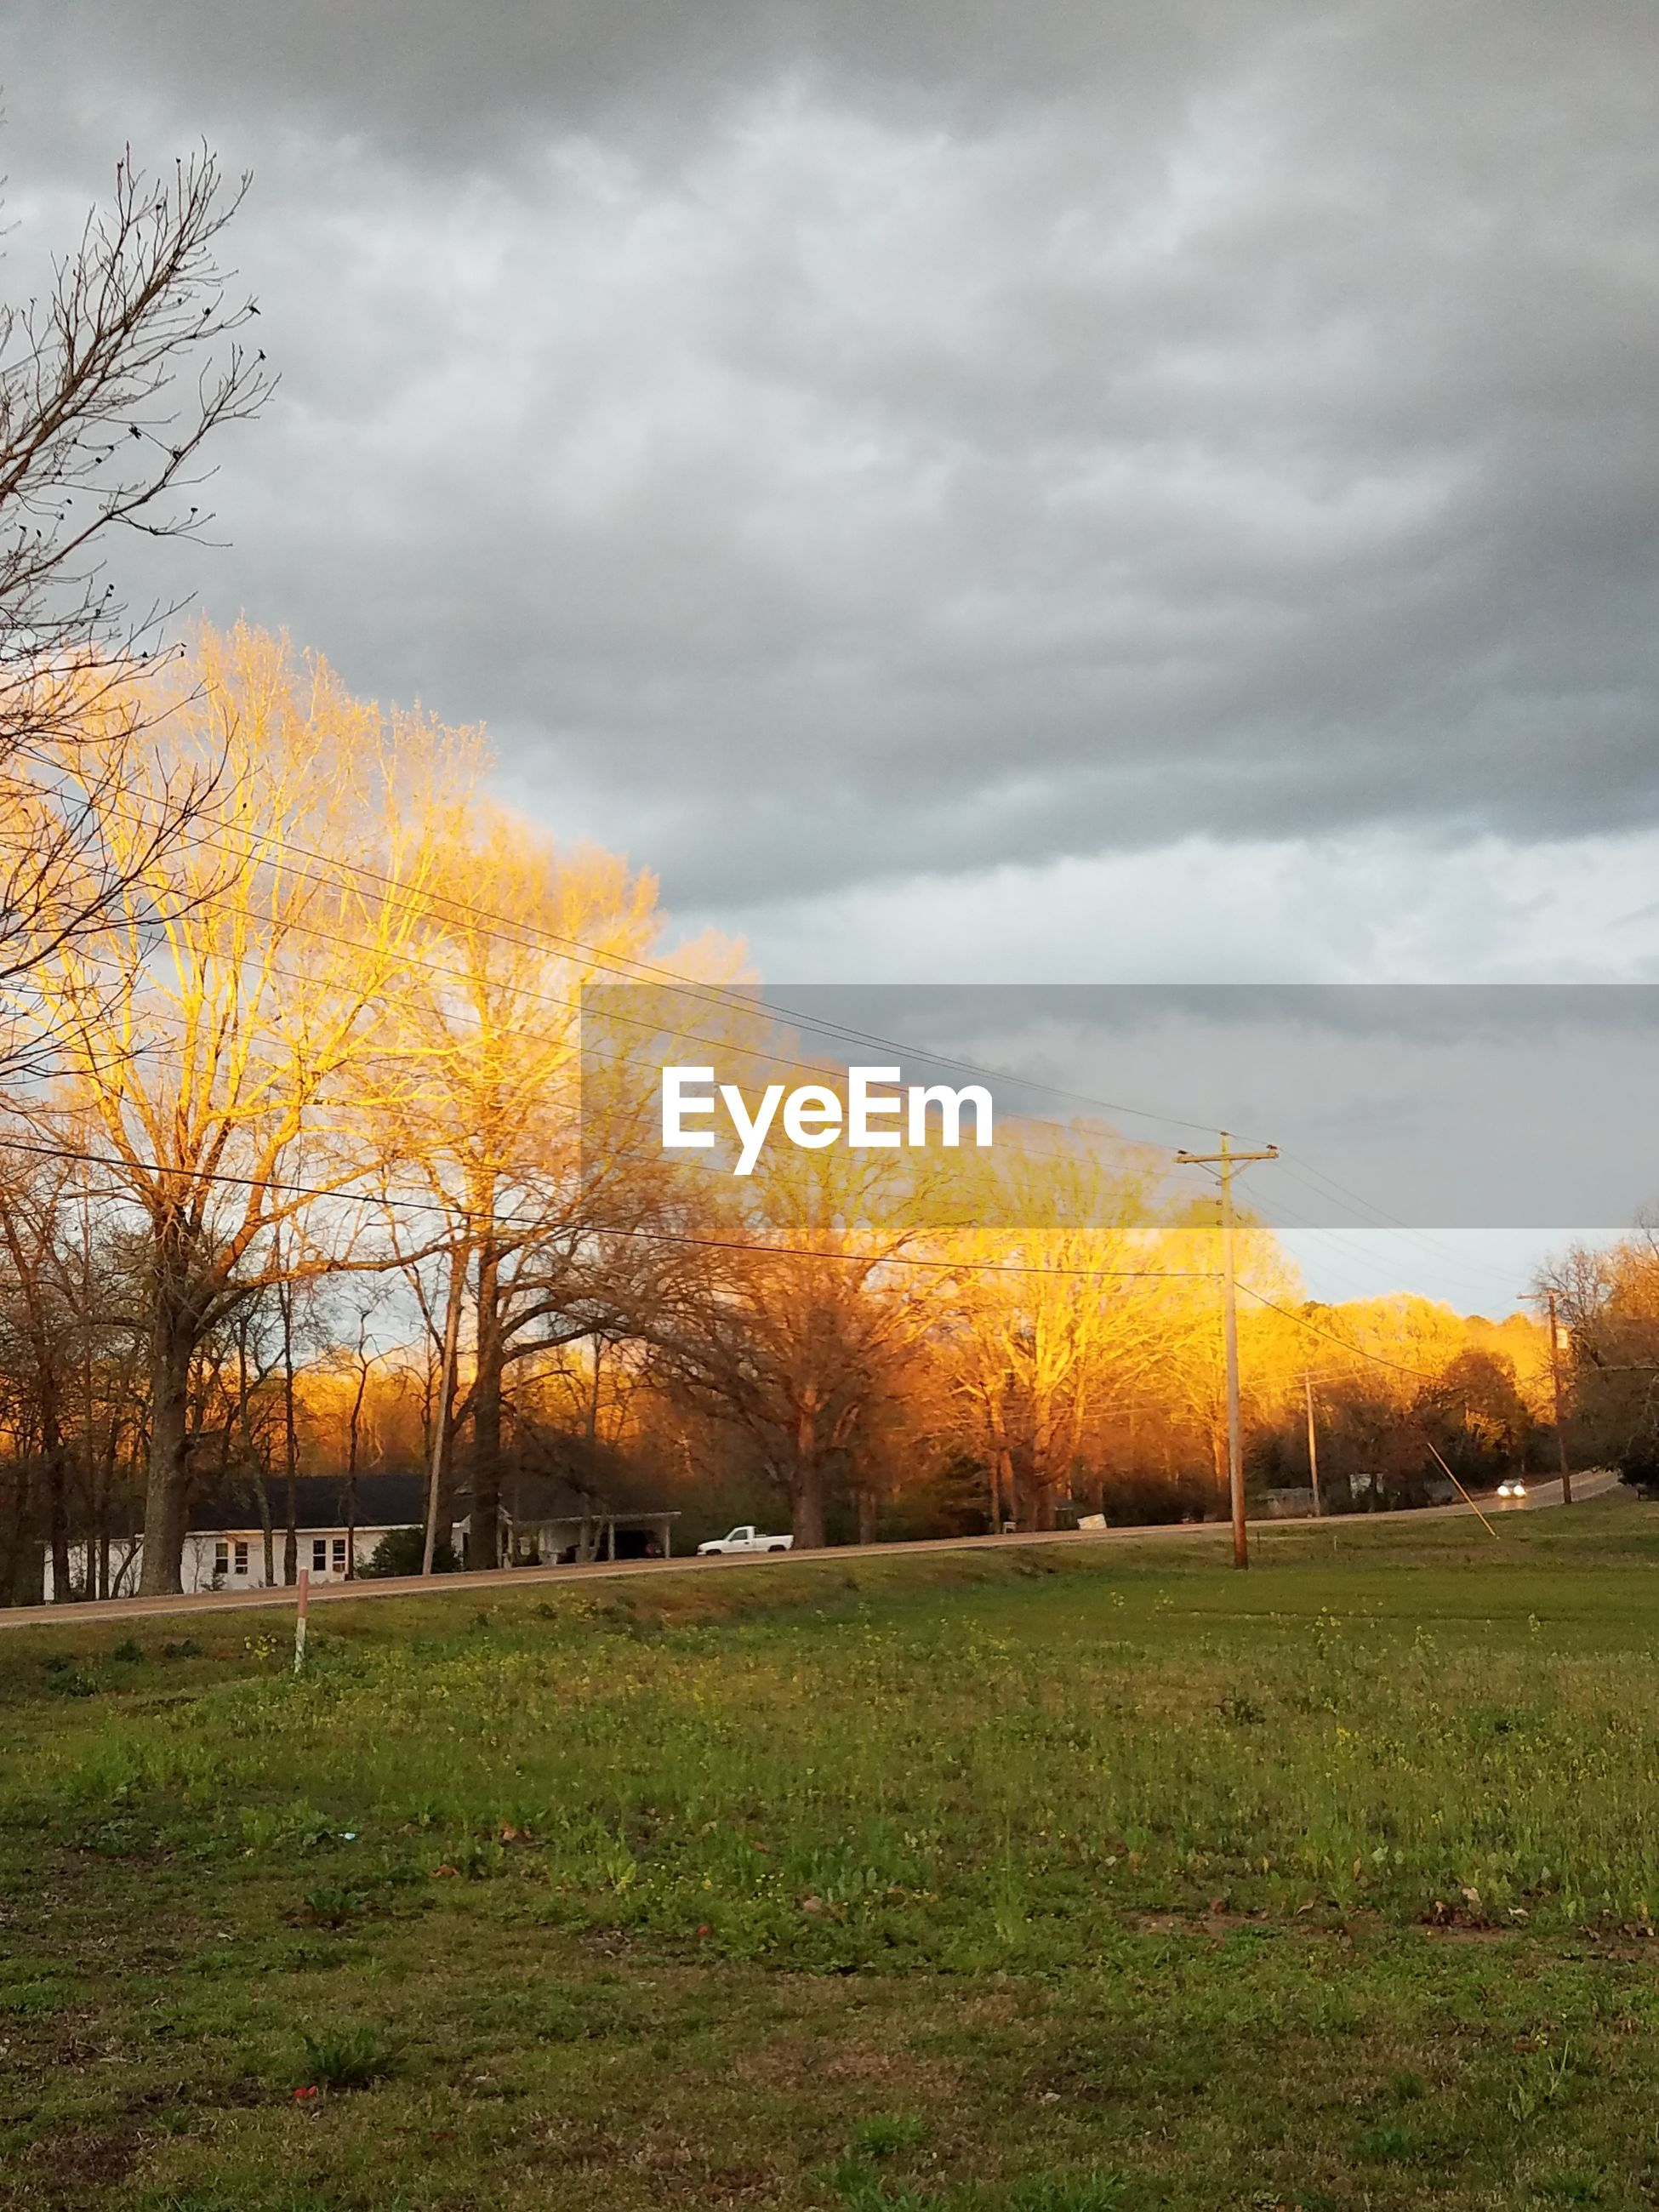 tree, cloud - sky, sky, nature, beauty in nature, no people, grass, sunset, outdoors, scenics, soccer field, day